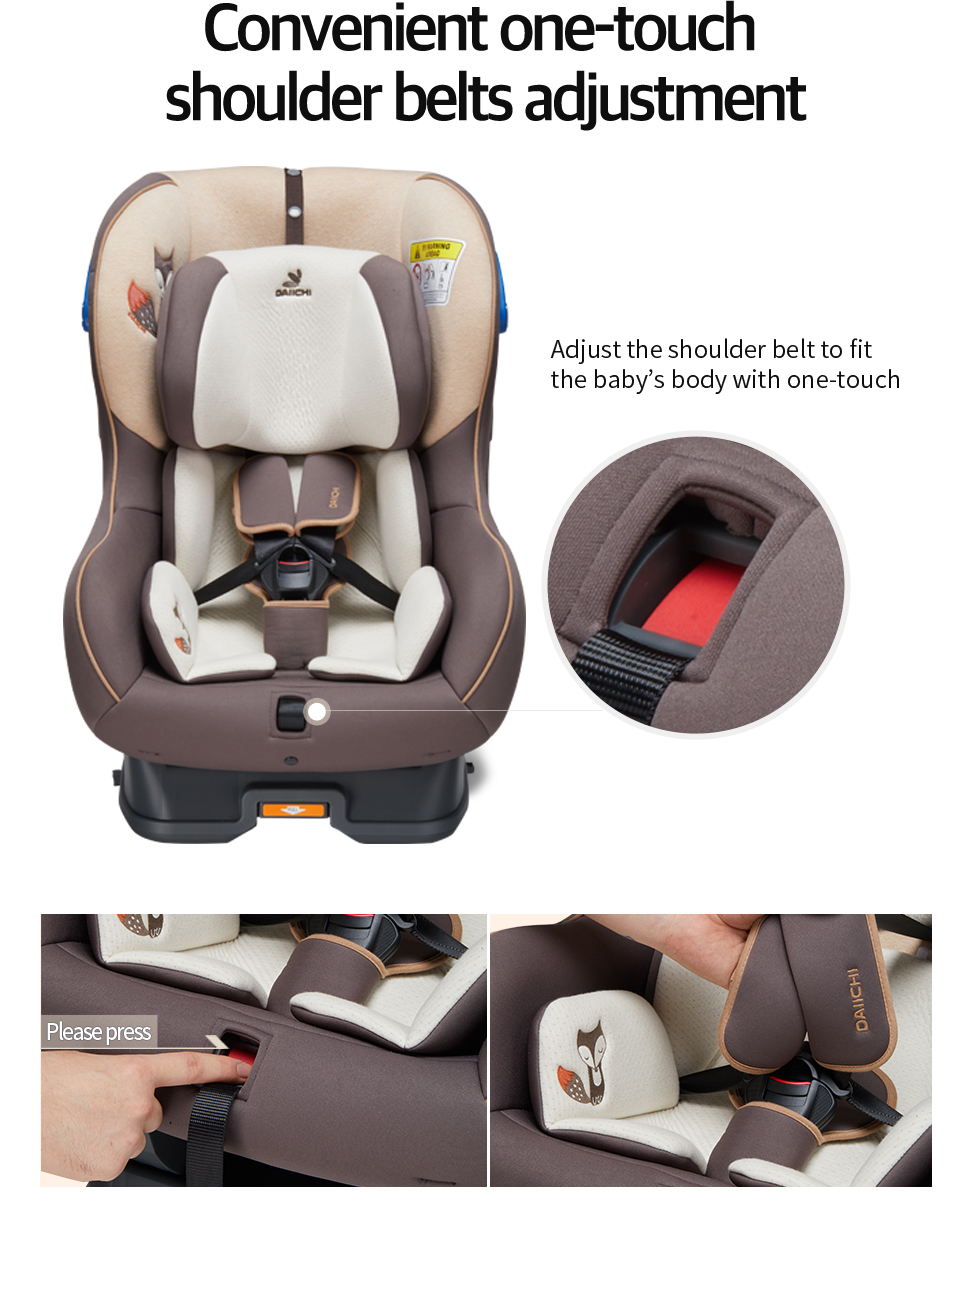 Adjust the shoulder belt to fit the baby's body with one-touch